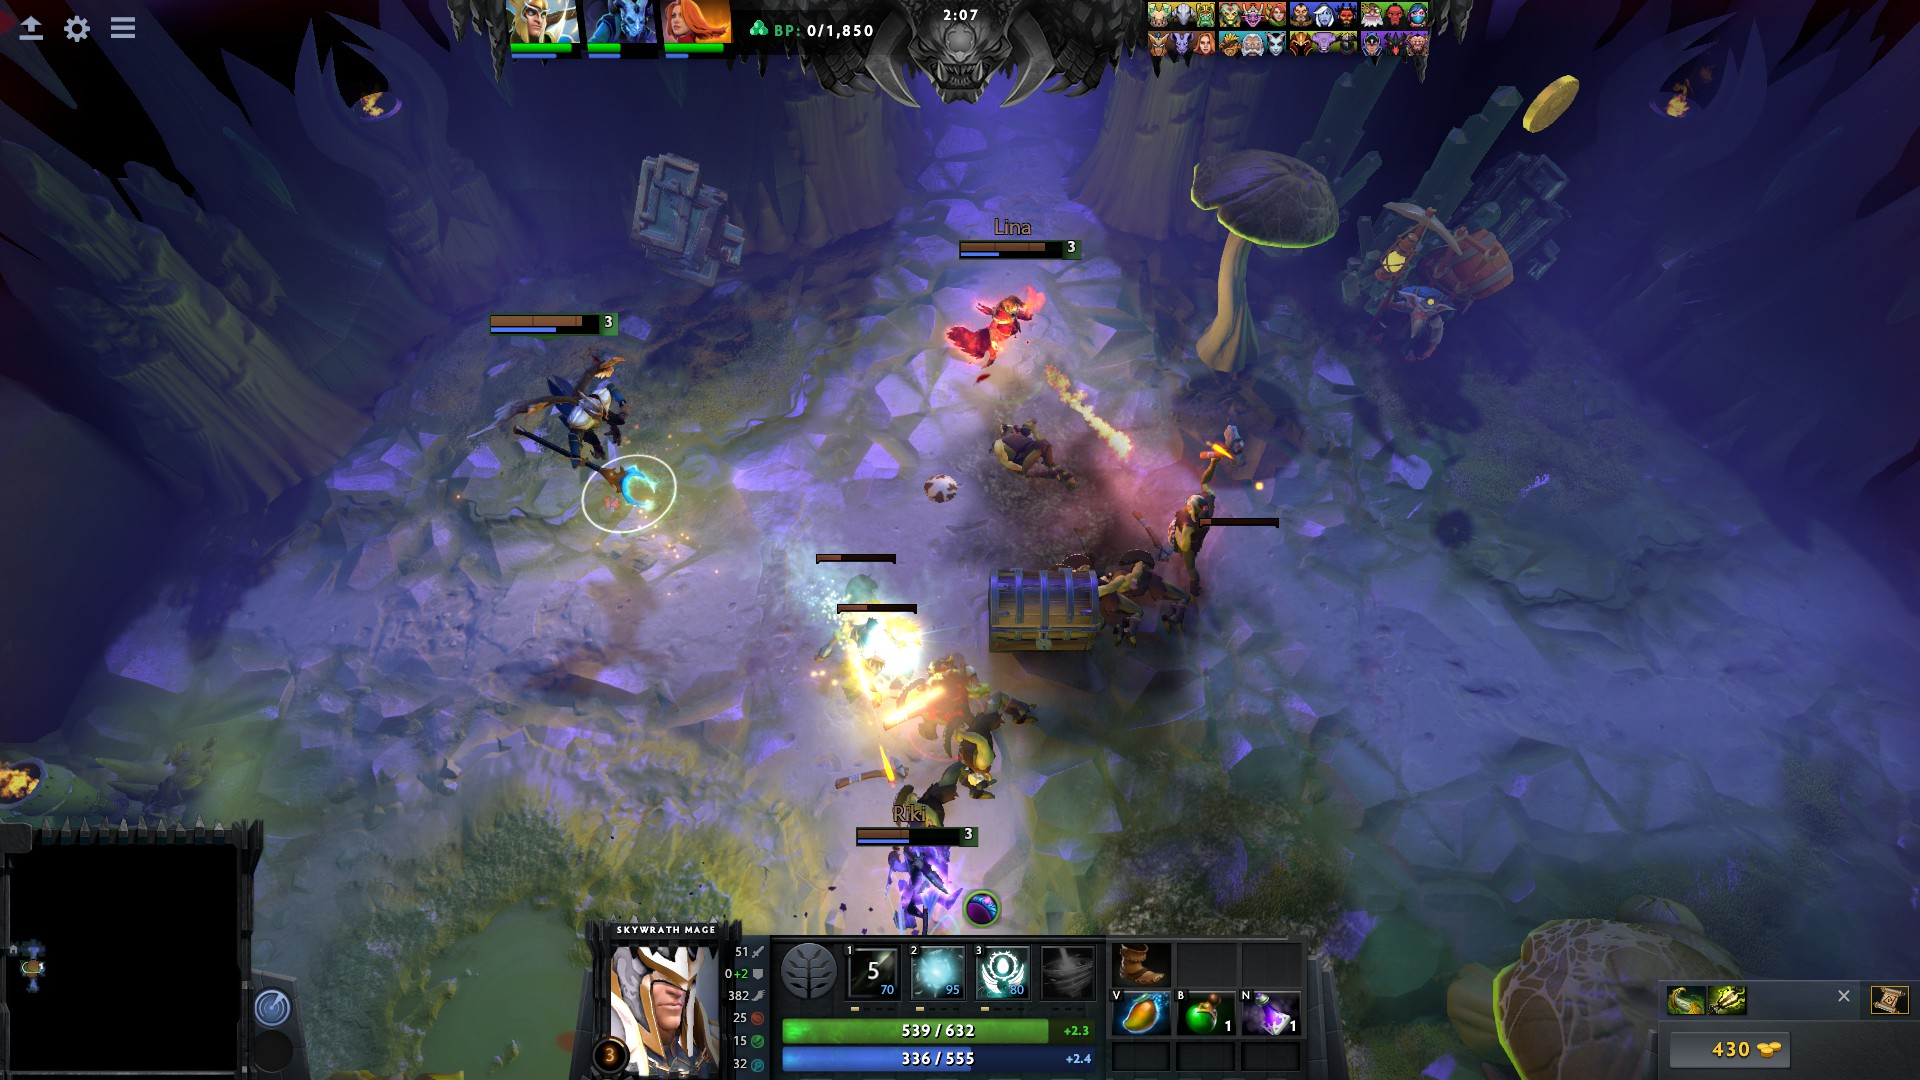 The Underhollow, a Battle Royale-like mode for Dota 2 is live and